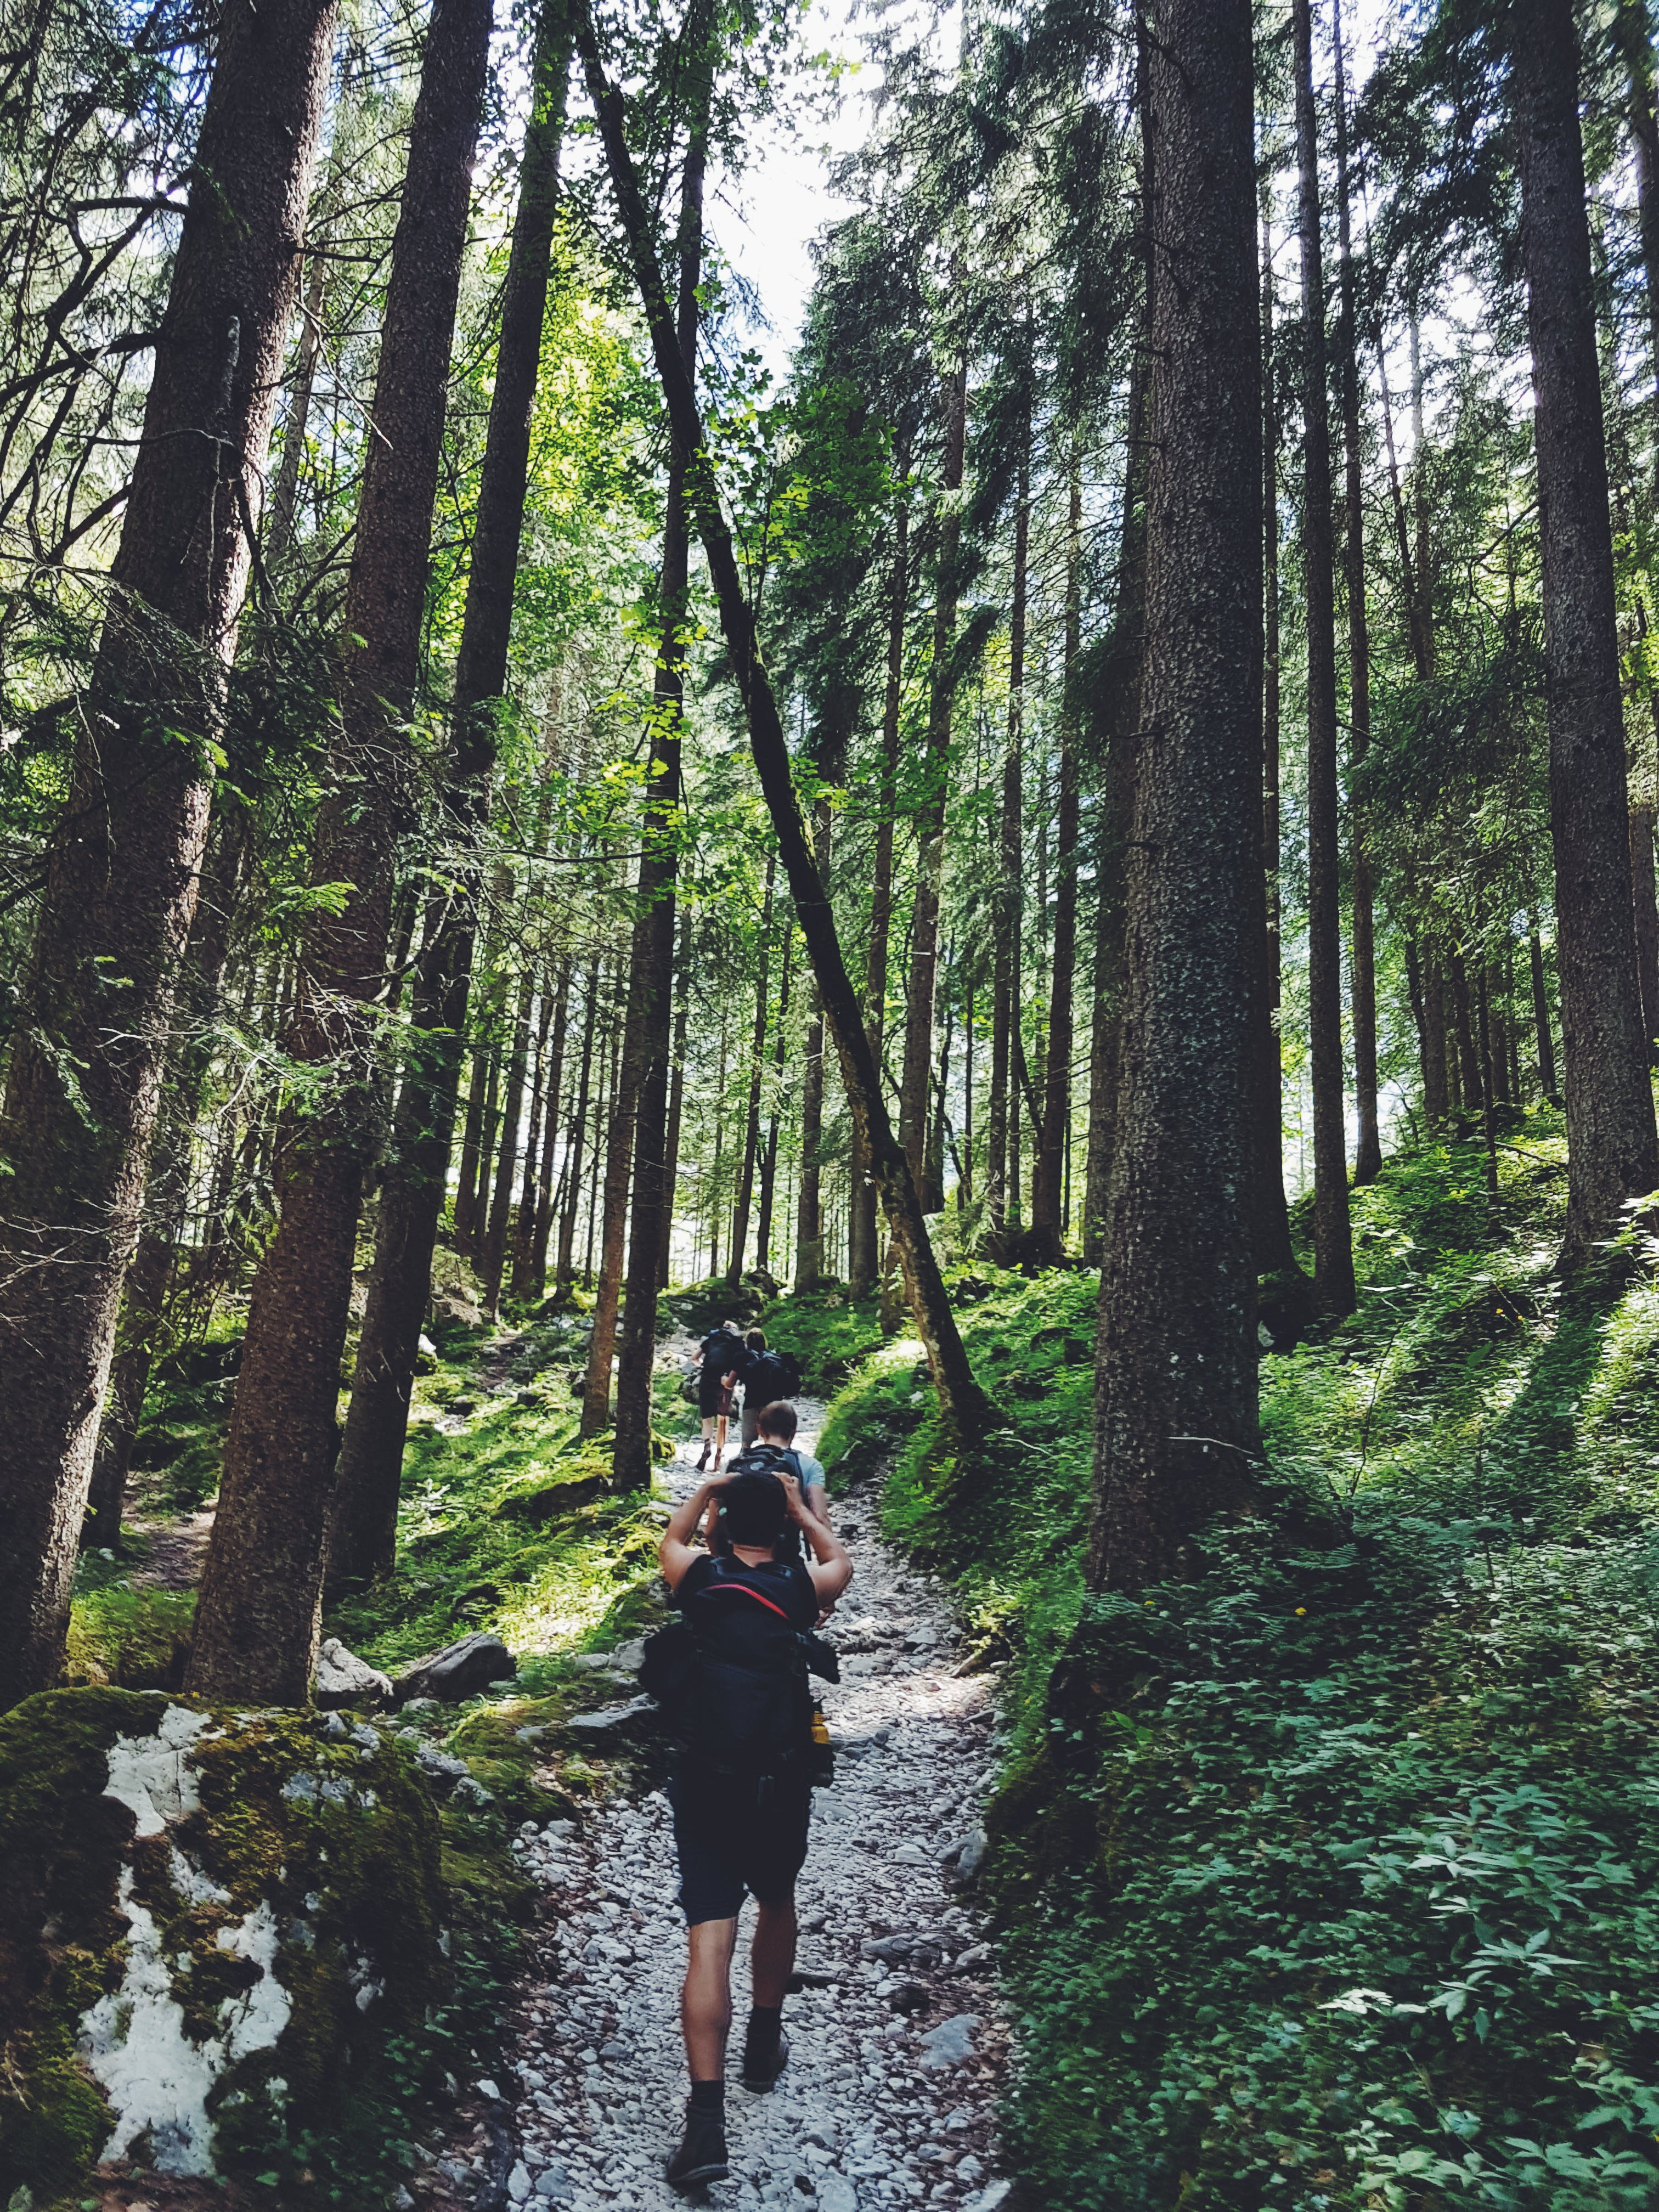 Four People Walking on Gray Path Surrounded by Tall Trees